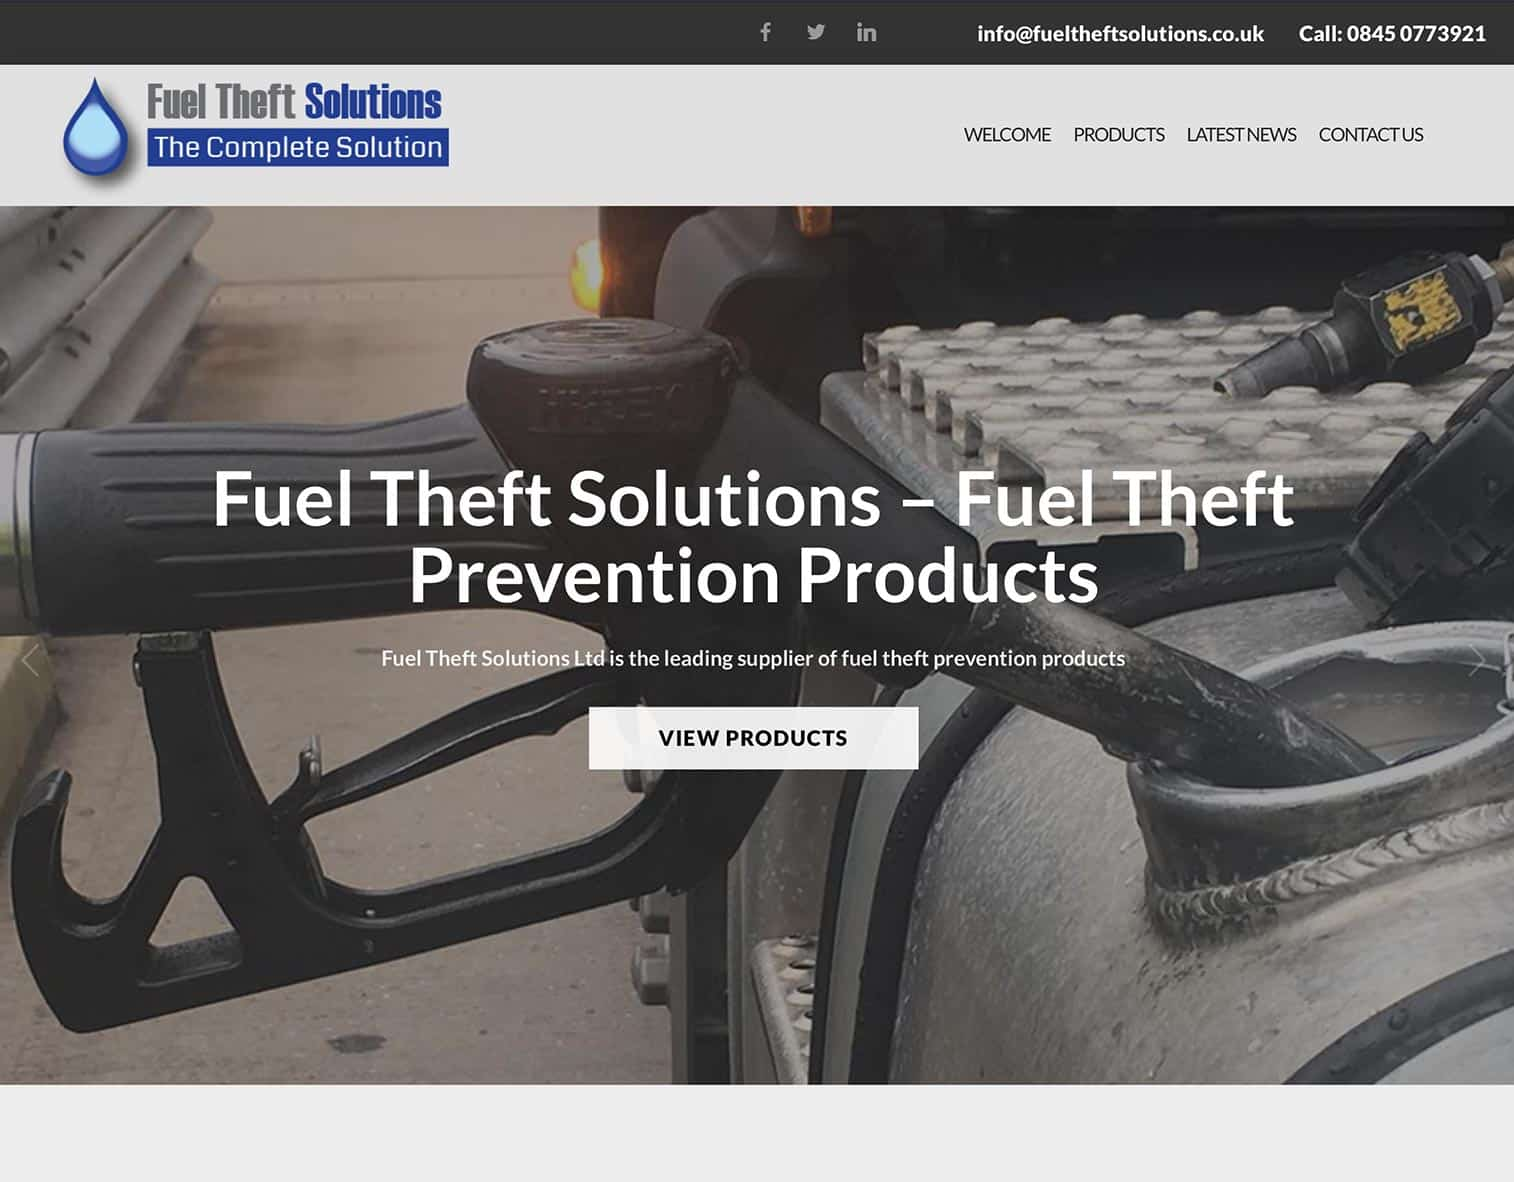 Fuel Theft Solutions UK Product Website